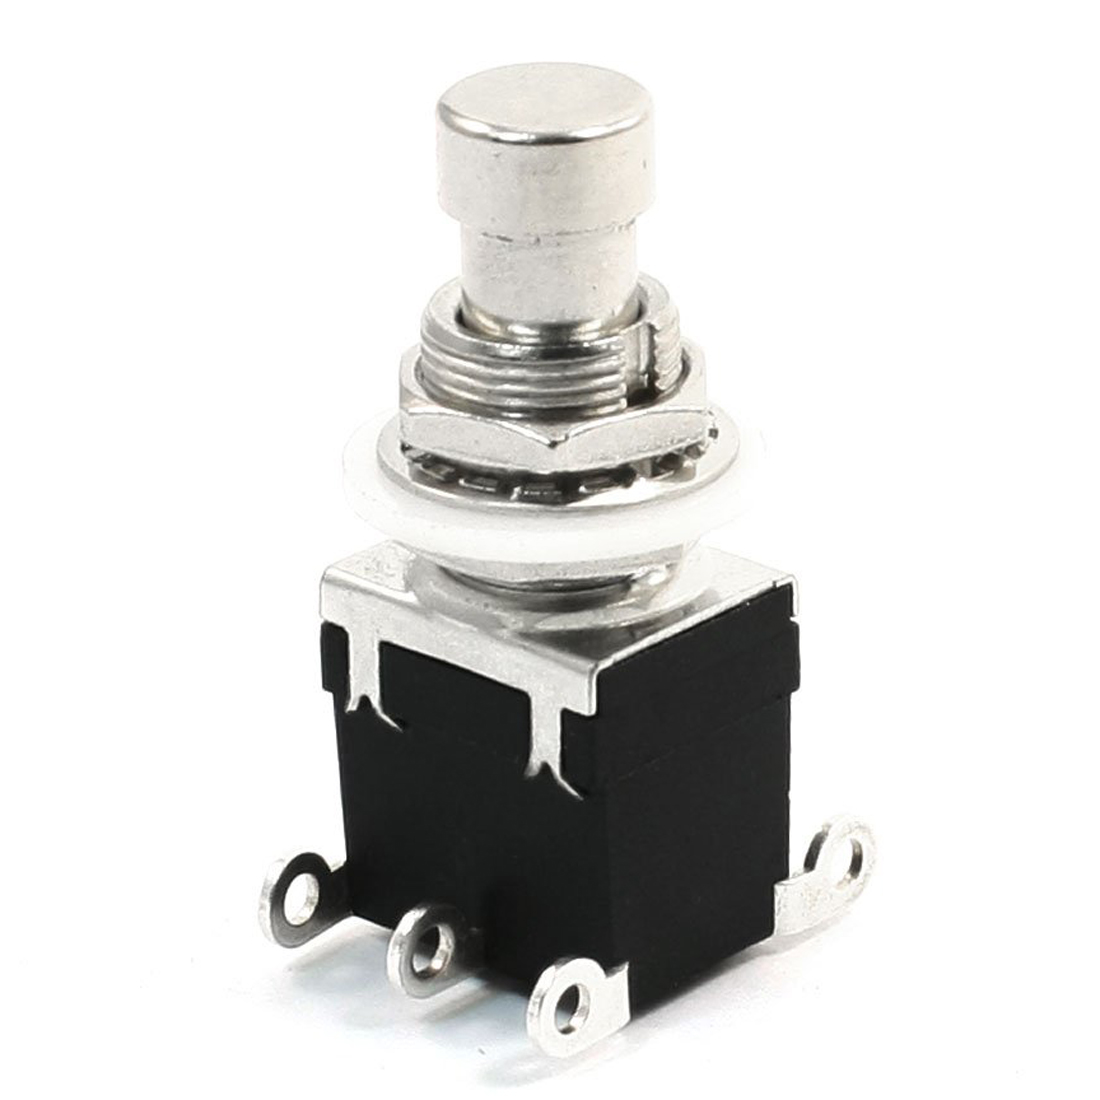 THGS-6Pins DPDT Momentary Stomp Foot Switch for Guitar AC 250V/2A 125V/4A [vk] av044746a200k switch pushbutton dpdt 6a 125v switch